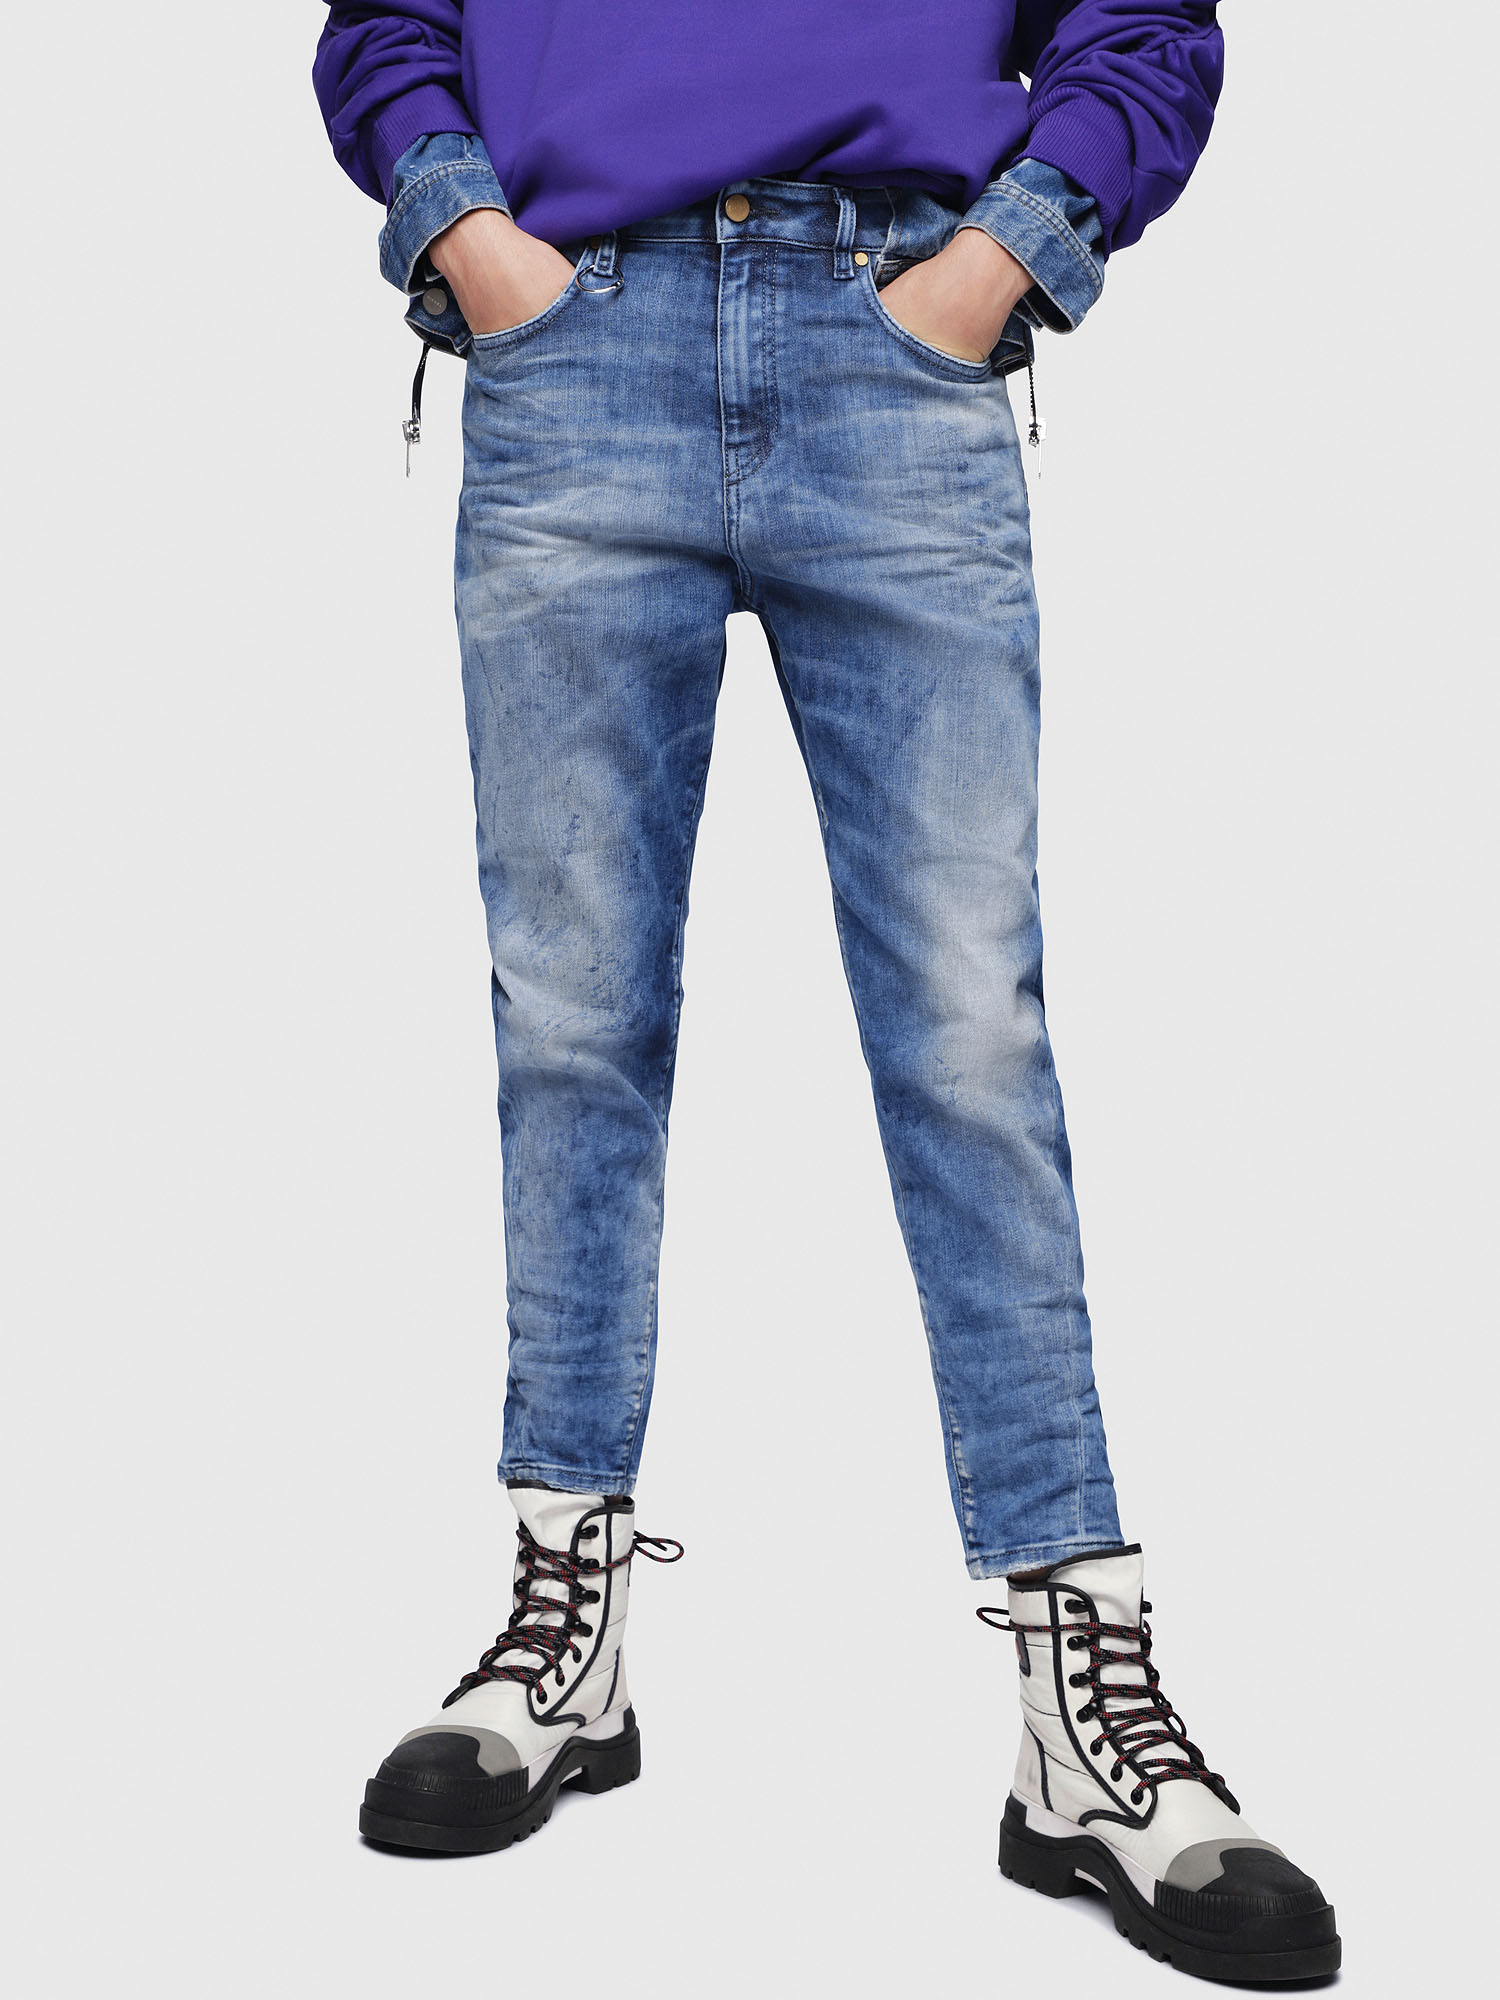 Diesel - Candys JoggJeans 080AS,  - Jeans - Image 1